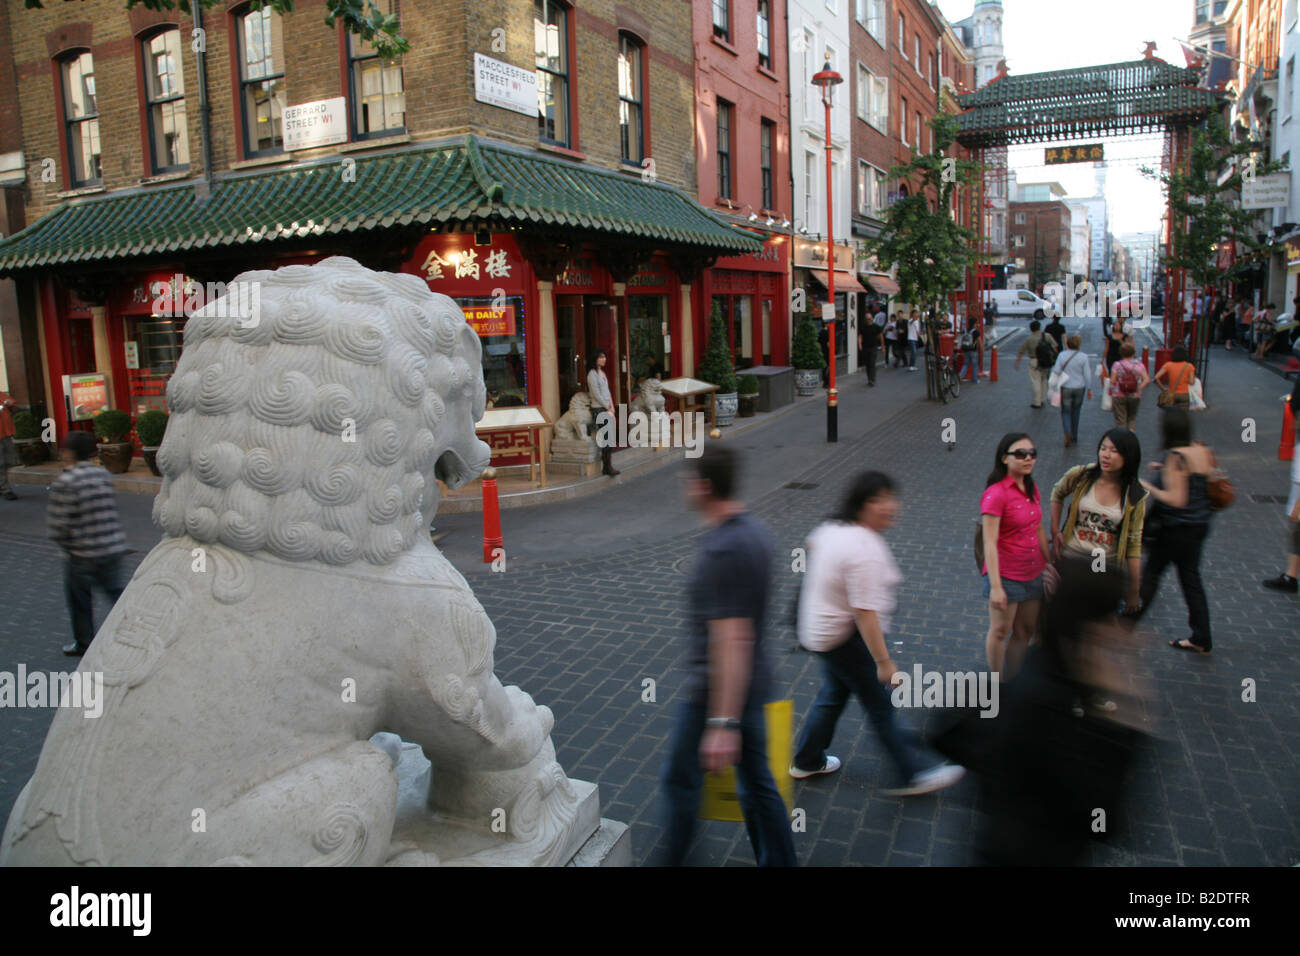 General view of Chinatown, central London - Stock Image